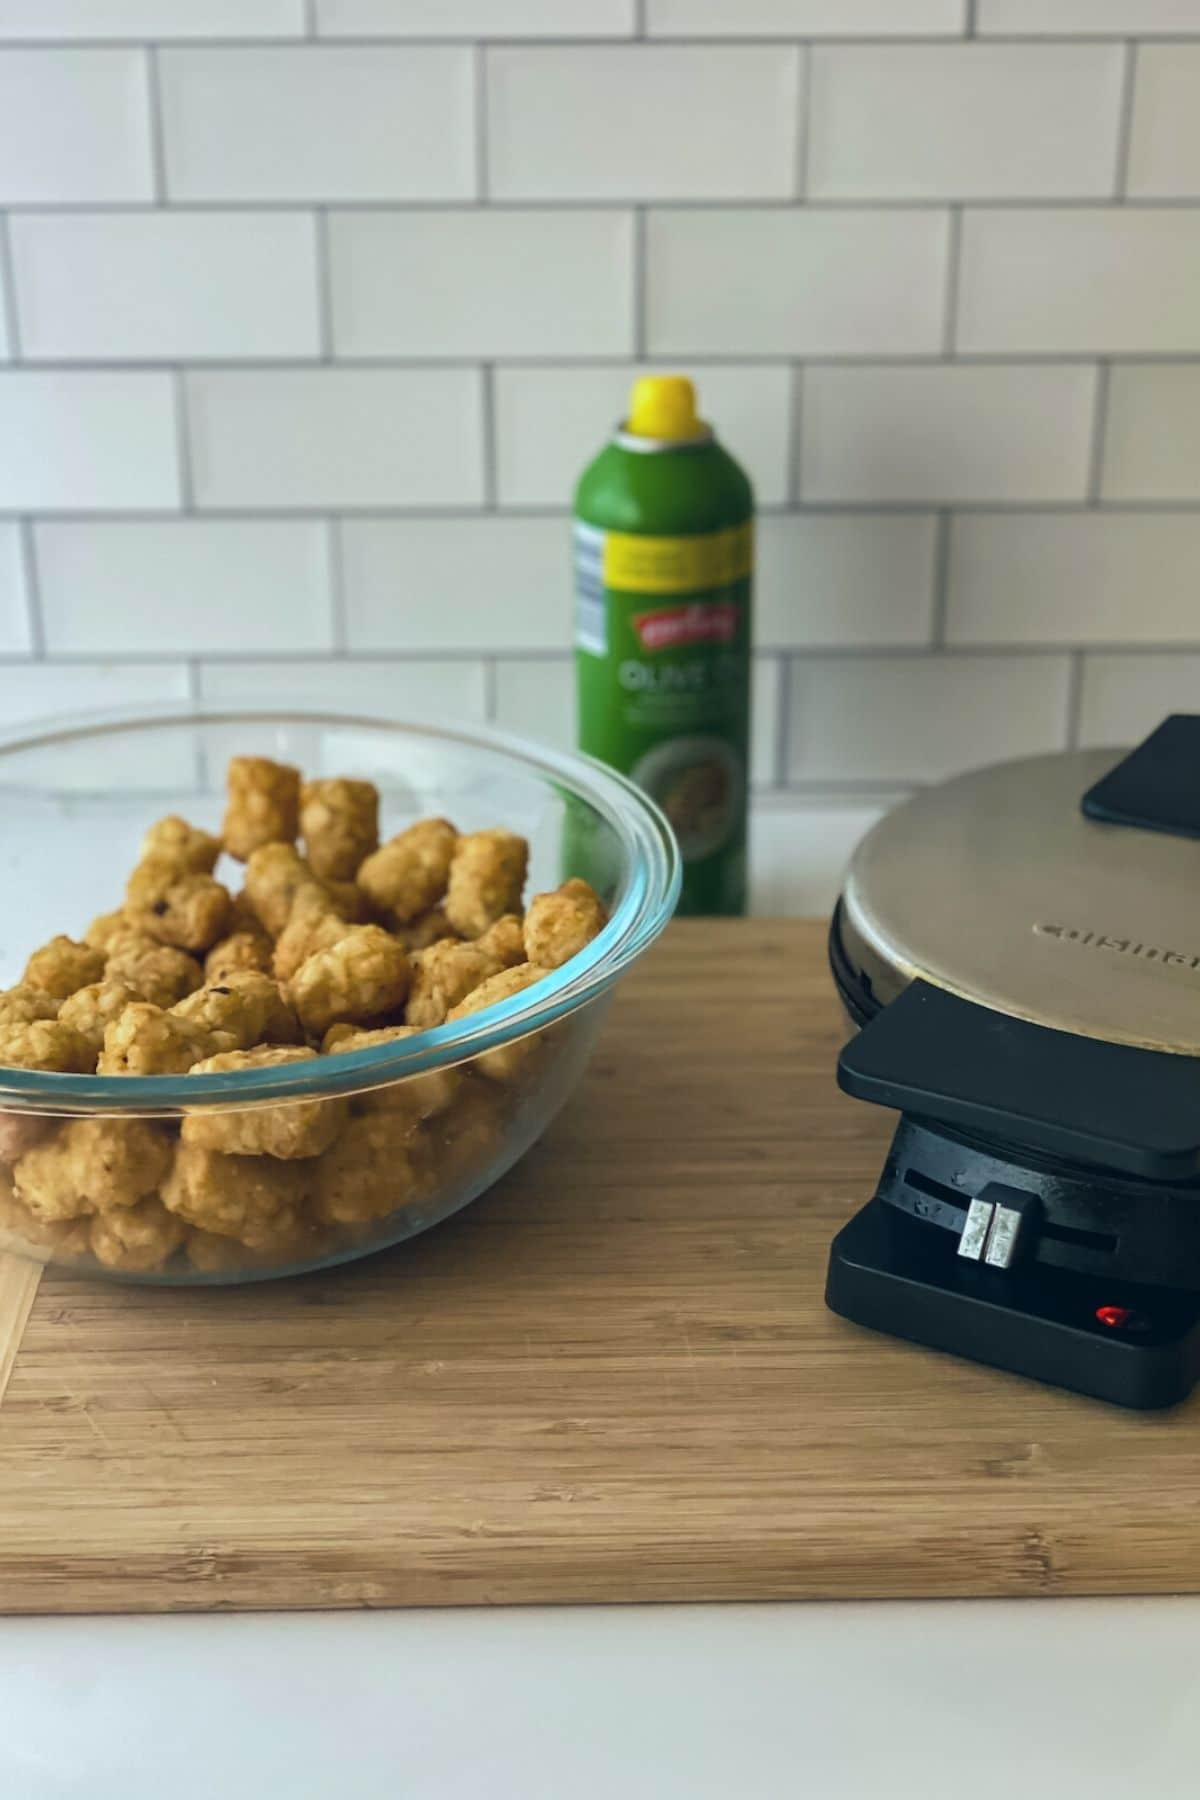 Tater tots in large glass bowl by cuisinart waffle aker